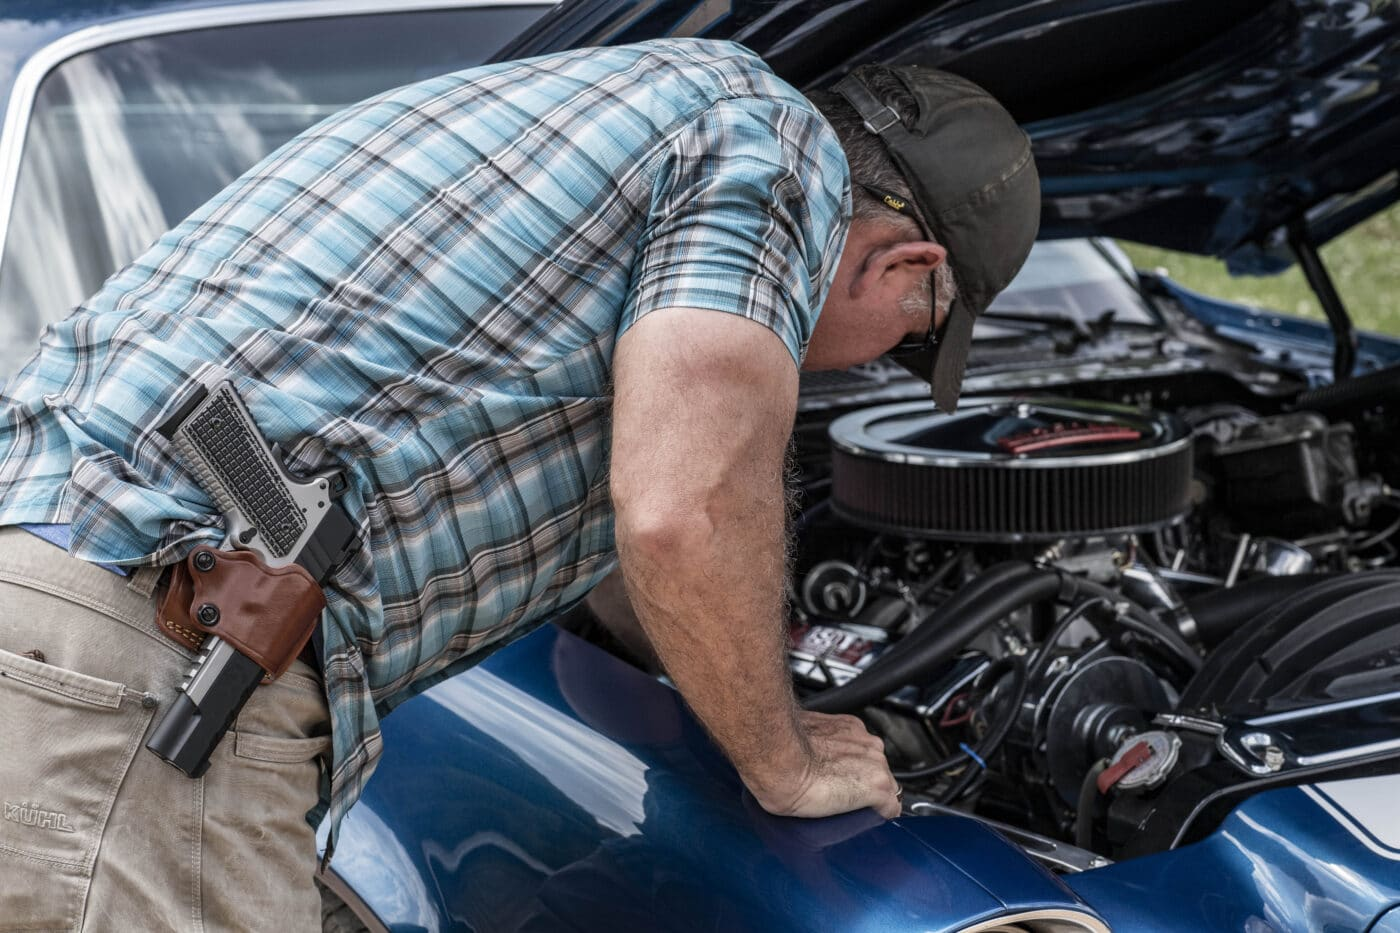 Man working on car while carrying an Emissary 1911 in a Yaqui slide holster